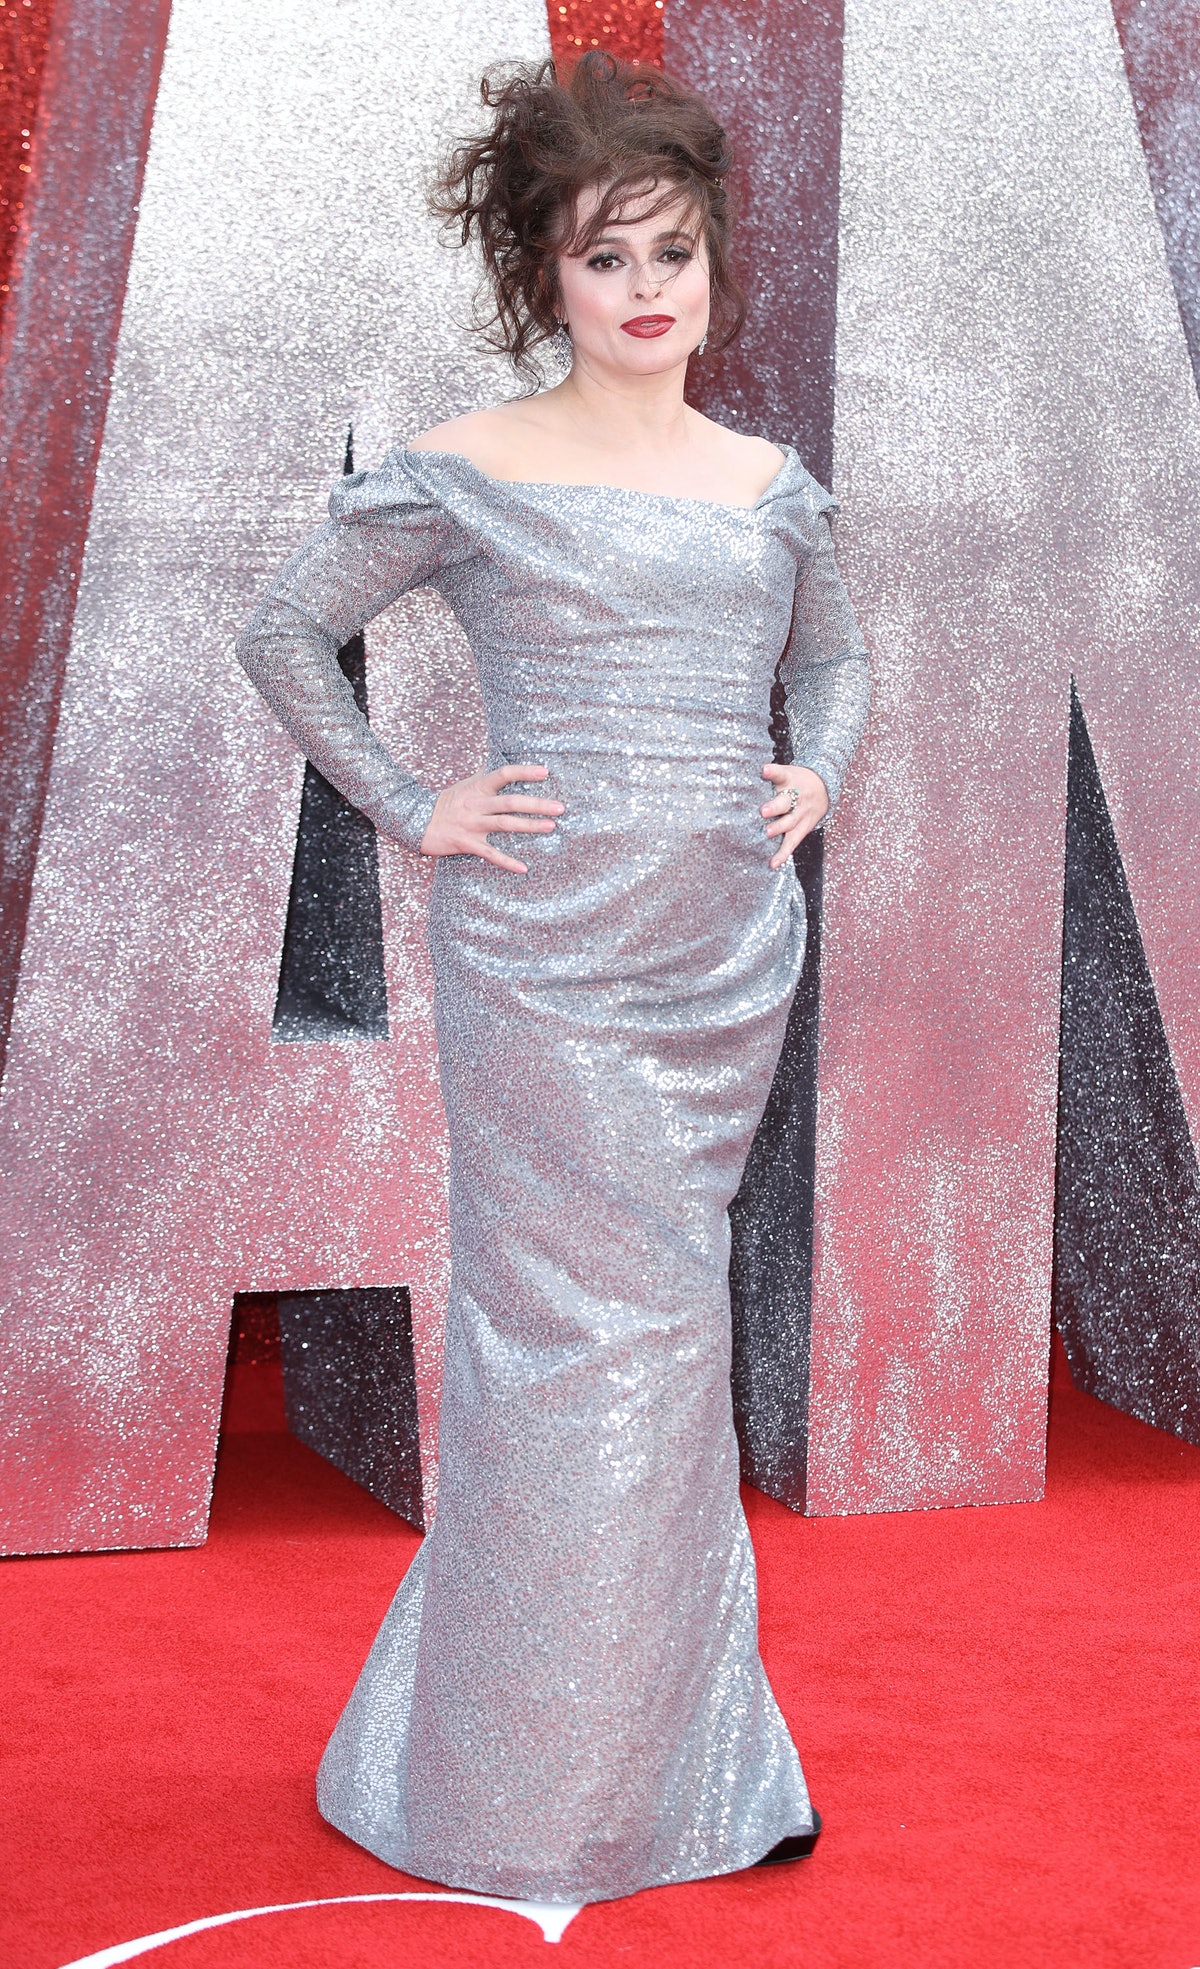 HBC wearing a silver gown